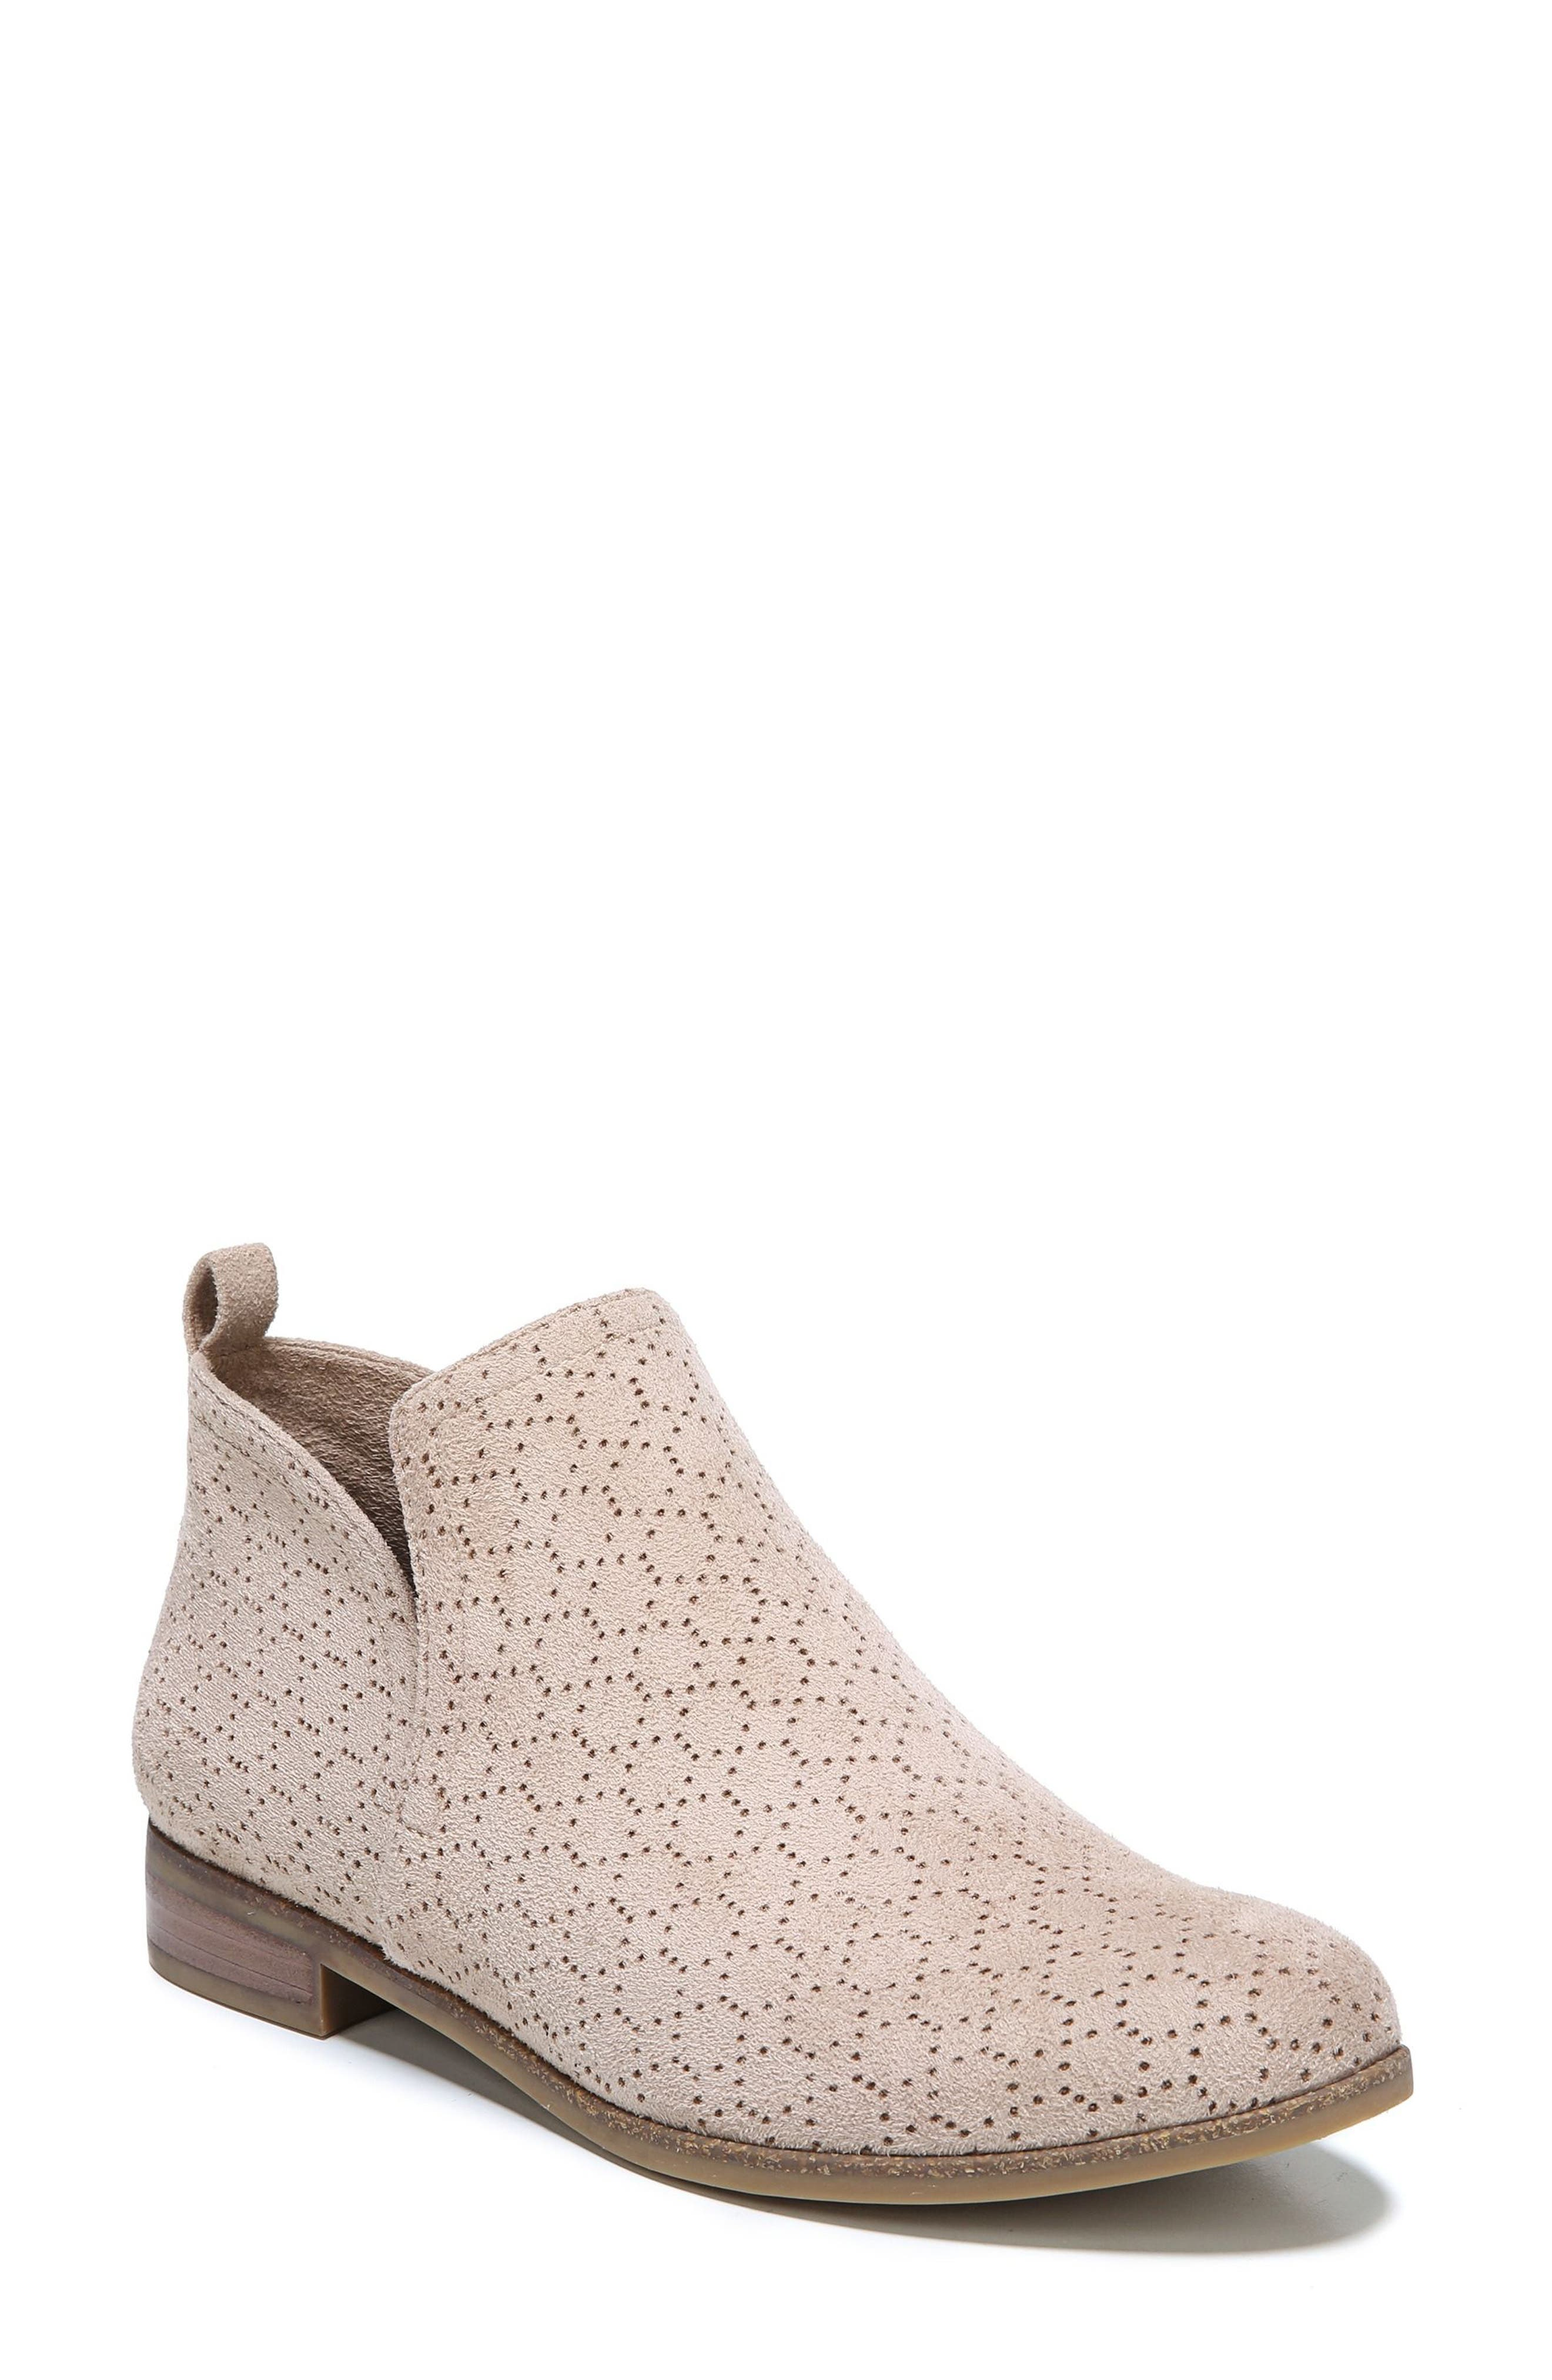 Rate Bootie,                             Main thumbnail 1, color,                             PUTTY FABRIC